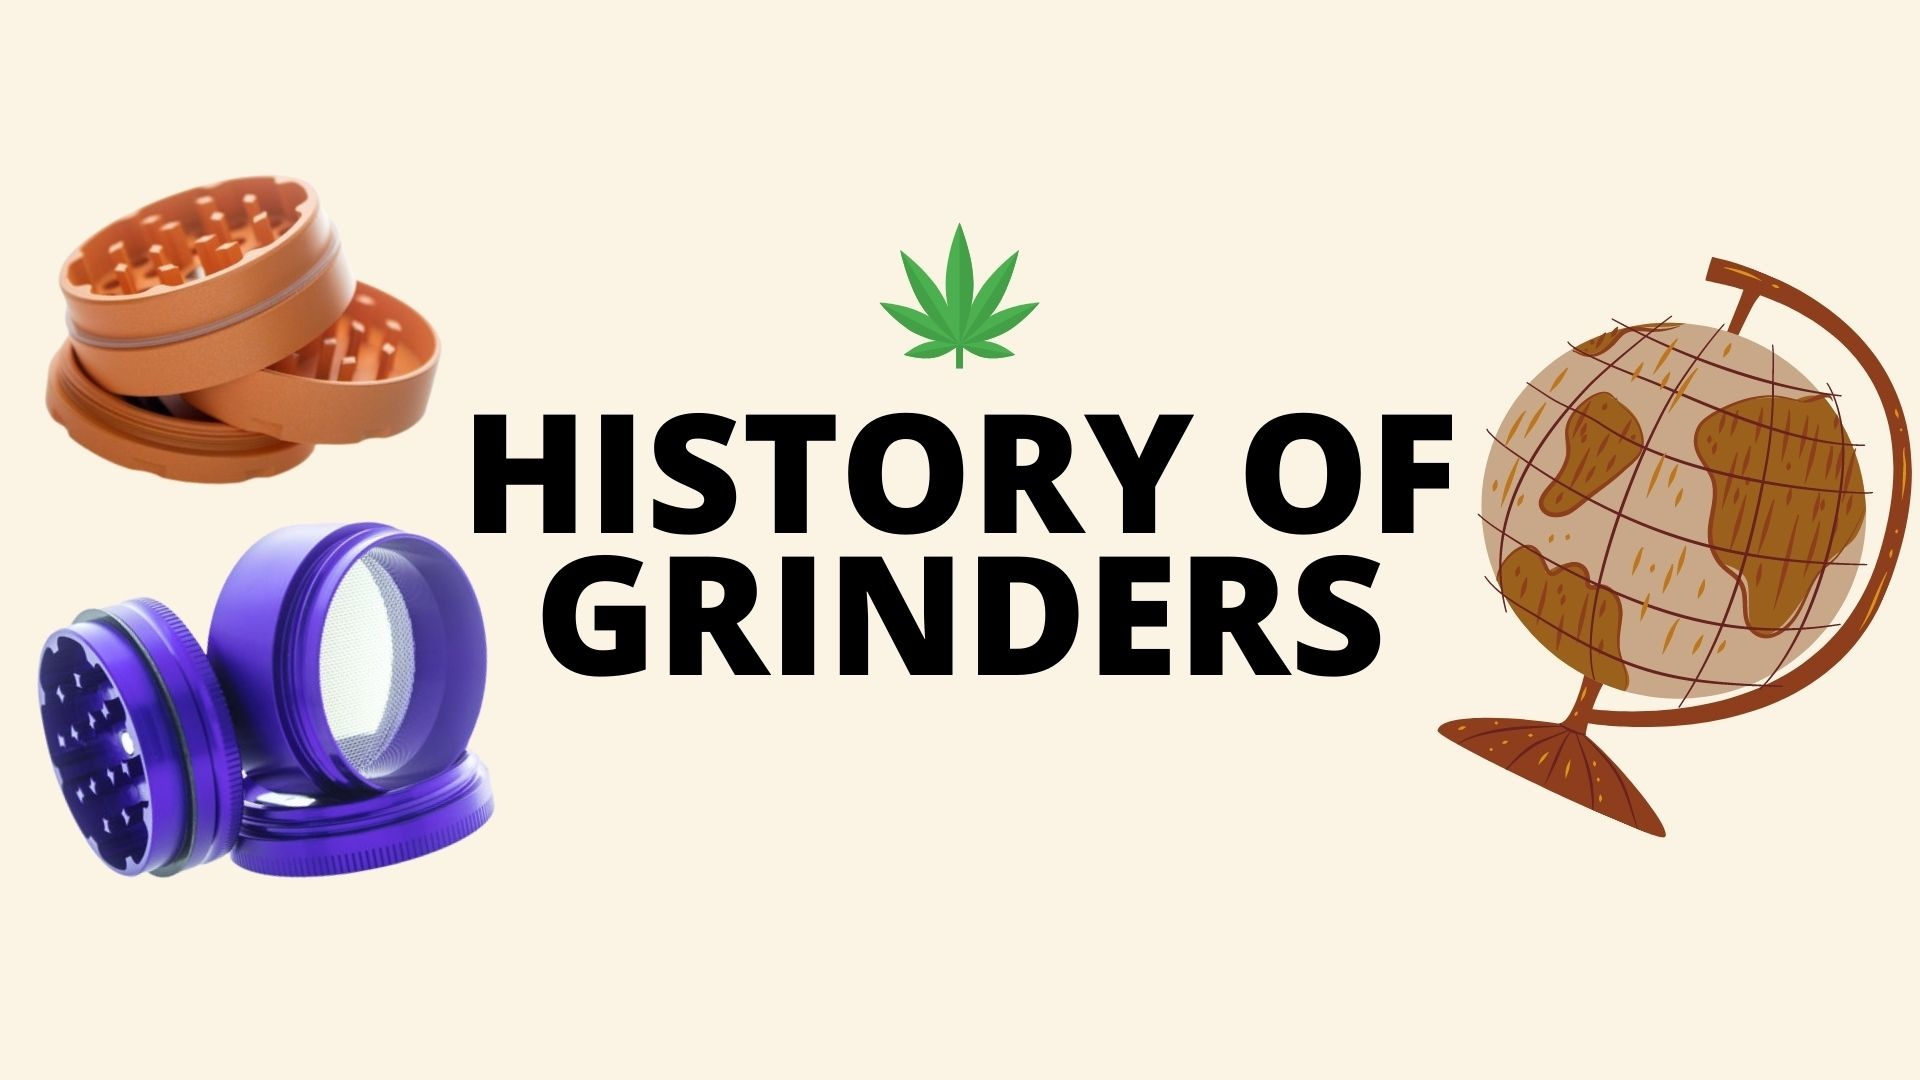 History of Grinders. Weed Grinder - Where it came from?